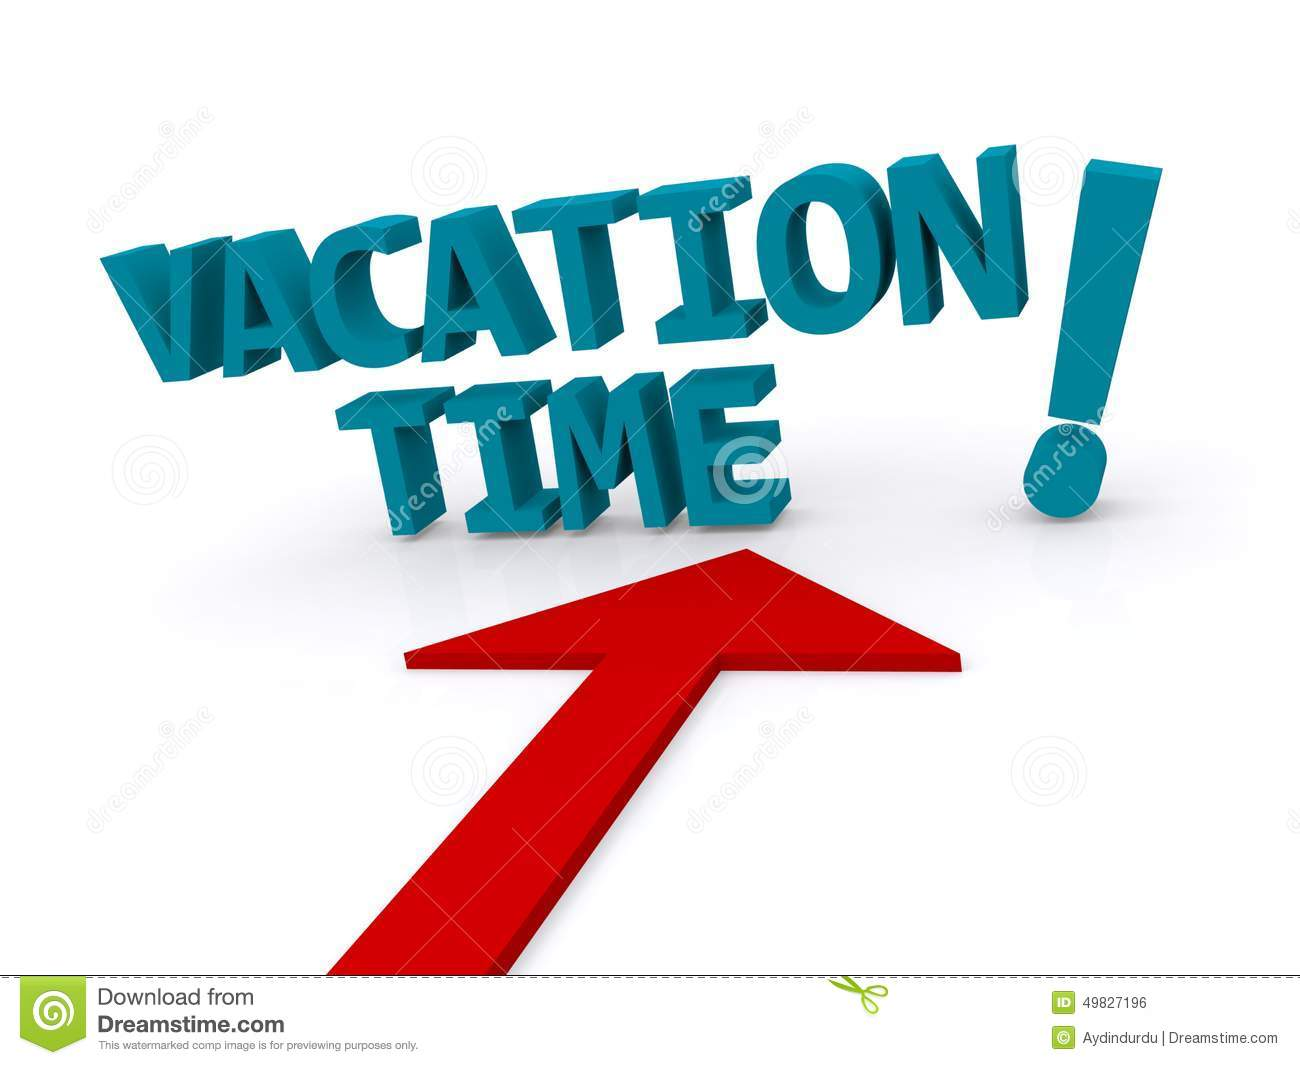 vacation time sign stock photo image 49827196 mark your calendar clipart mark your calendar clip art september